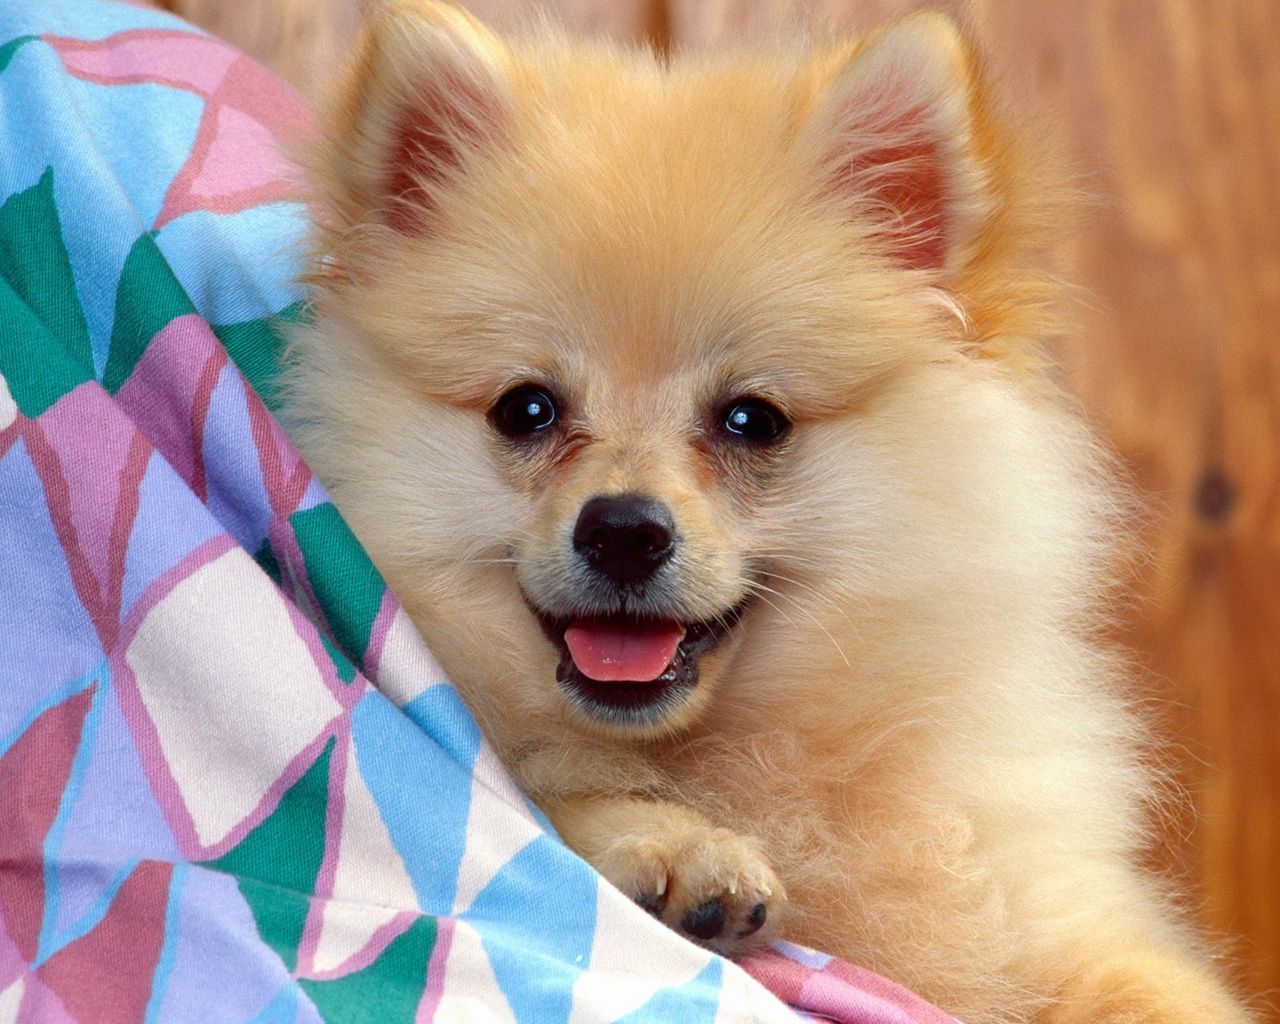 Download Free Cute Puppy 40 Wallpapers Hd Wallpaper X Background Xyz Dog Baby Pictures Cute Puppies Cute Puppy Pictures